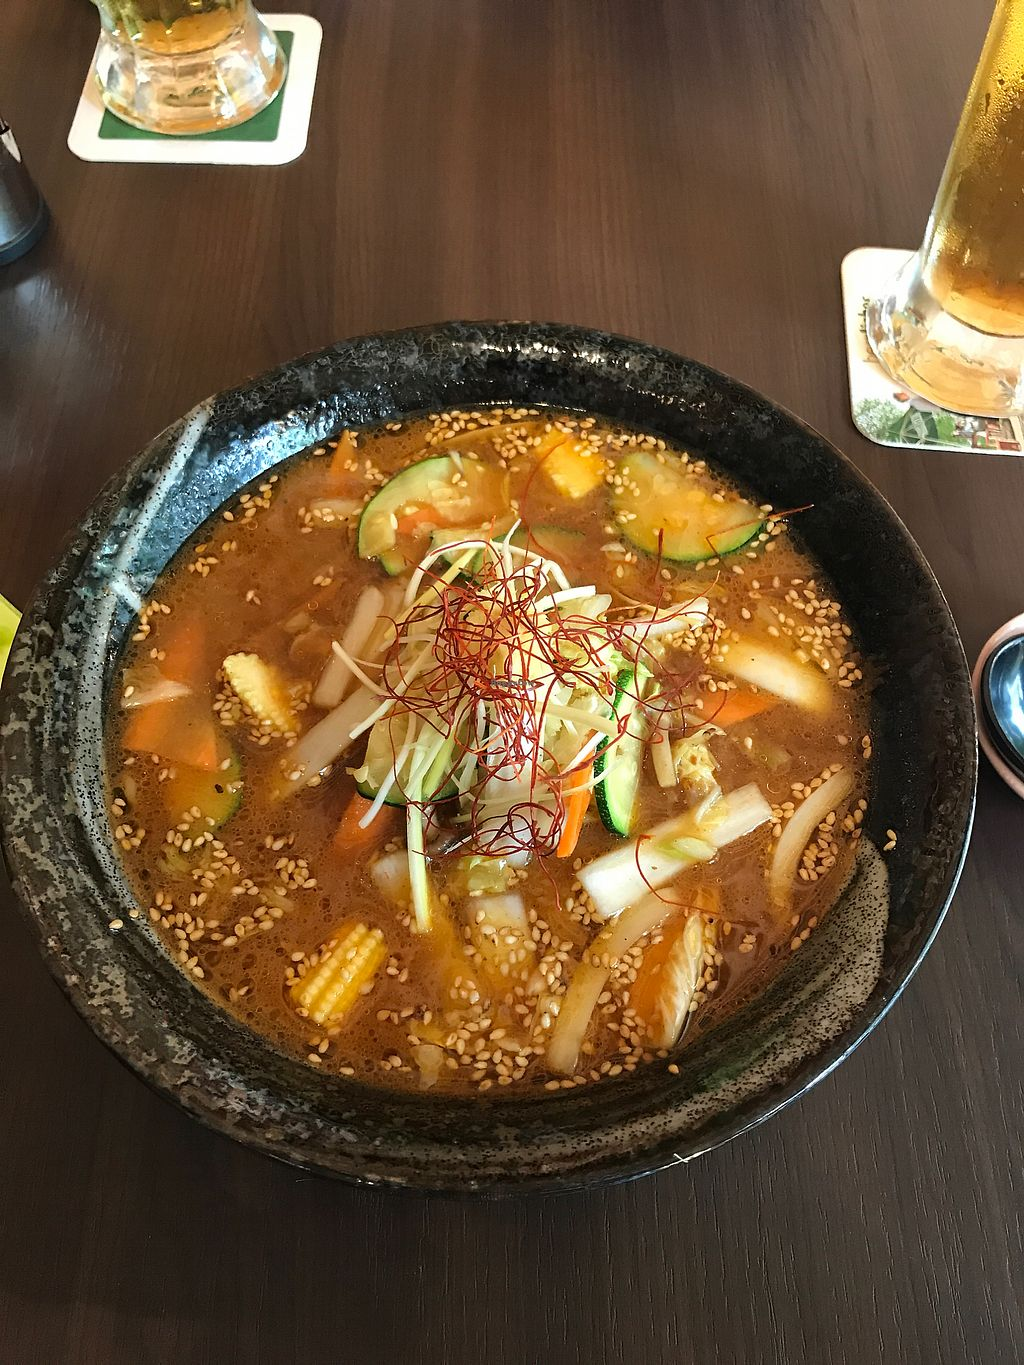 """Photo of Iimori Gyoza Bar  by <a href=""""/members/profile/artczo"""">artczo</a> <br/>spicy miso ramen <br/> July 30, 2017  - <a href='/contact/abuse/image/97428/286643'>Report</a>"""